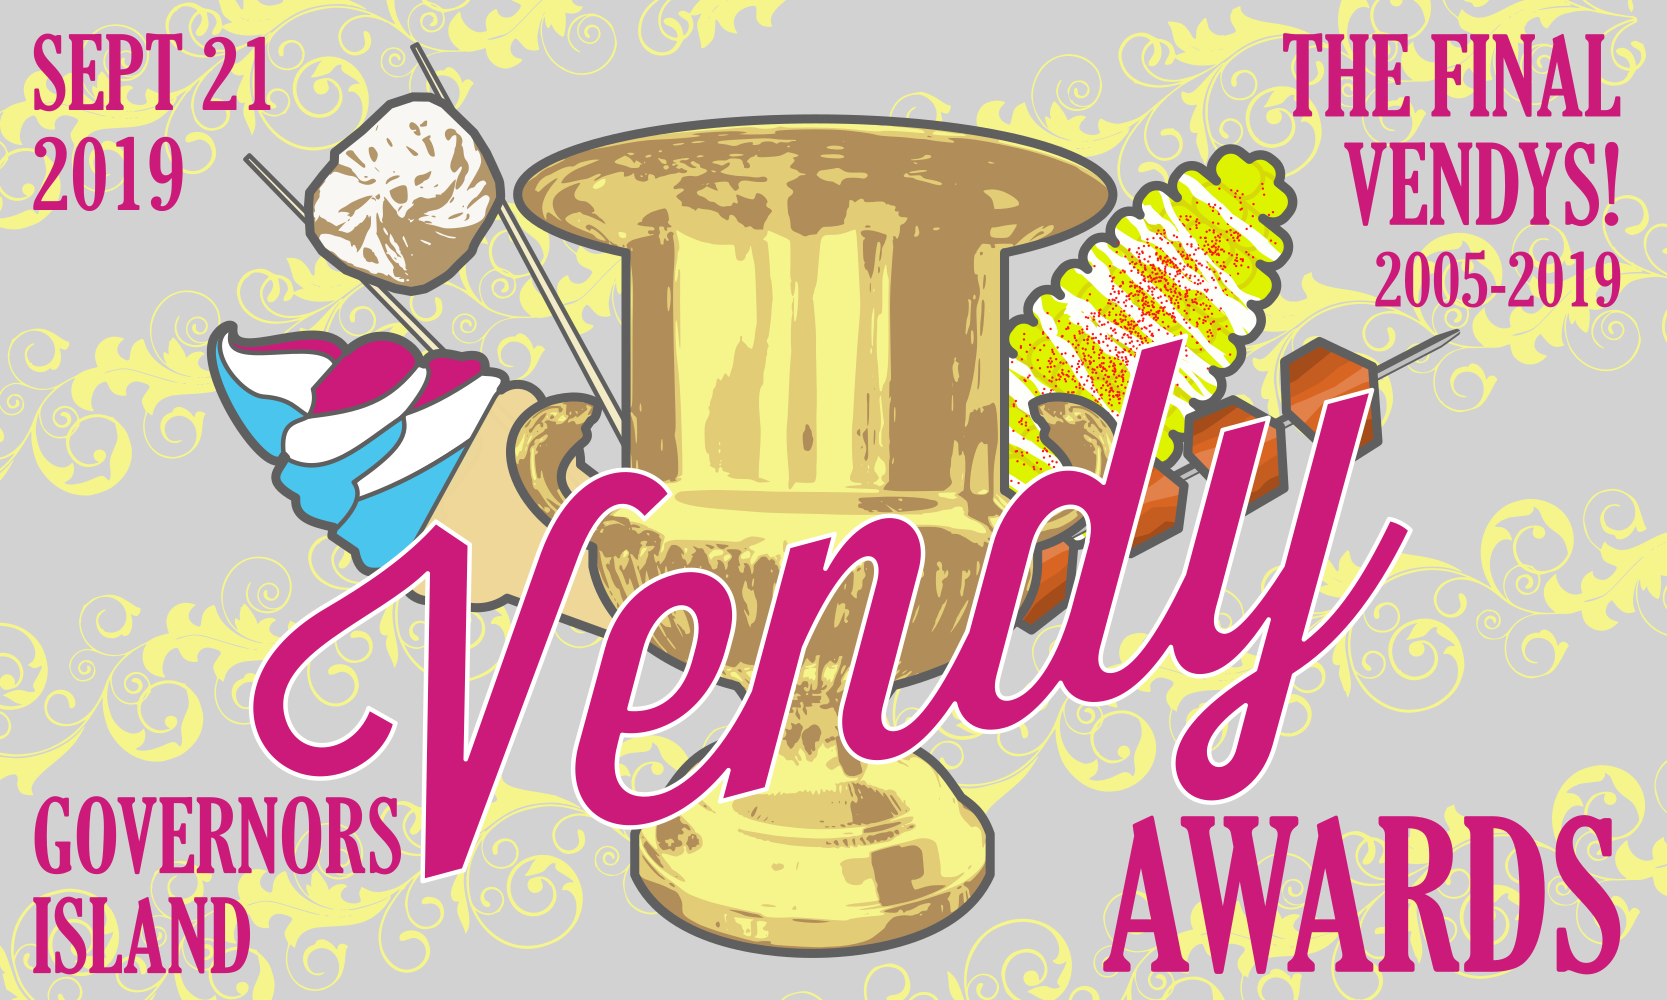 The final Vendy Awards will showcase many of the best street vendors in NYC.